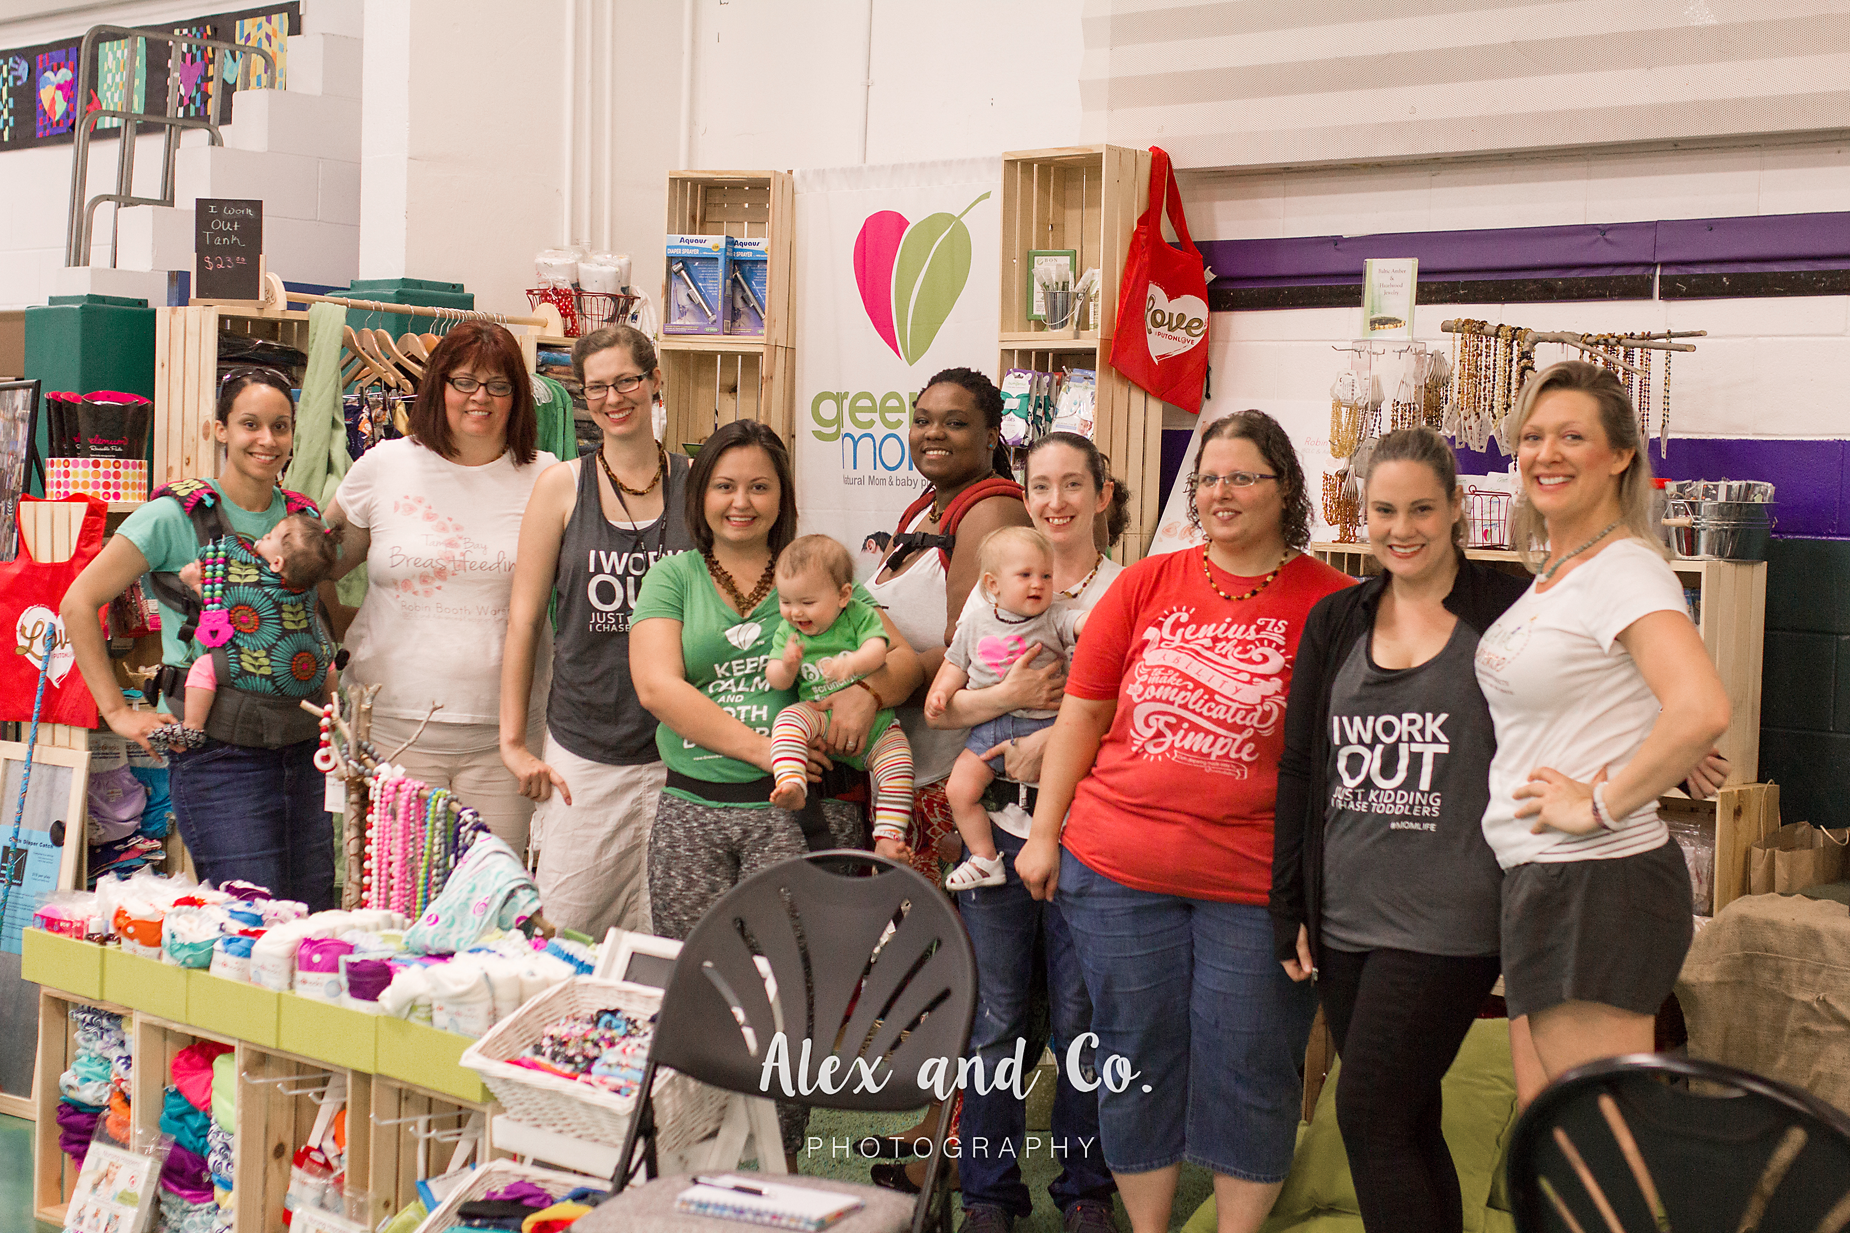 Alex and Co. Photography | Tampa Bay Birth Network | Natural Birth & Baby Expo 2016 | Green Mommy Diapers